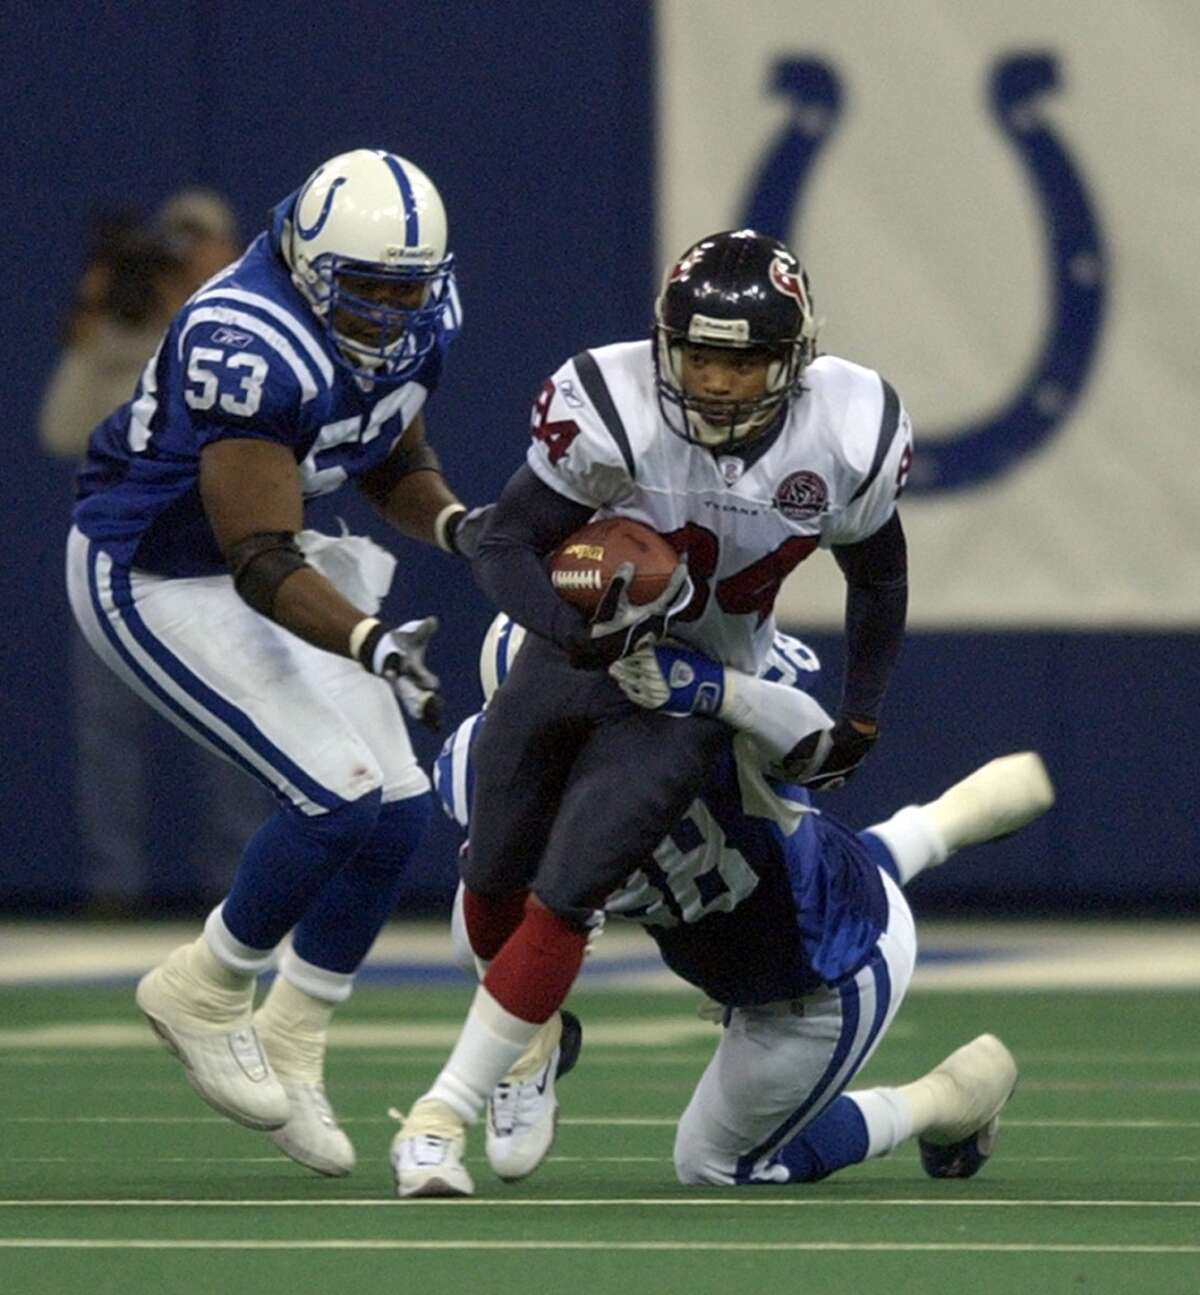 Dec. 1, 2002: Colts 19, Texans 3 In the Texans' first visit to Indy, the Colts once again would not yield a touchdown to Houston. The Texans were held to one field goal that was kicked with less than two minutes to go in the game)